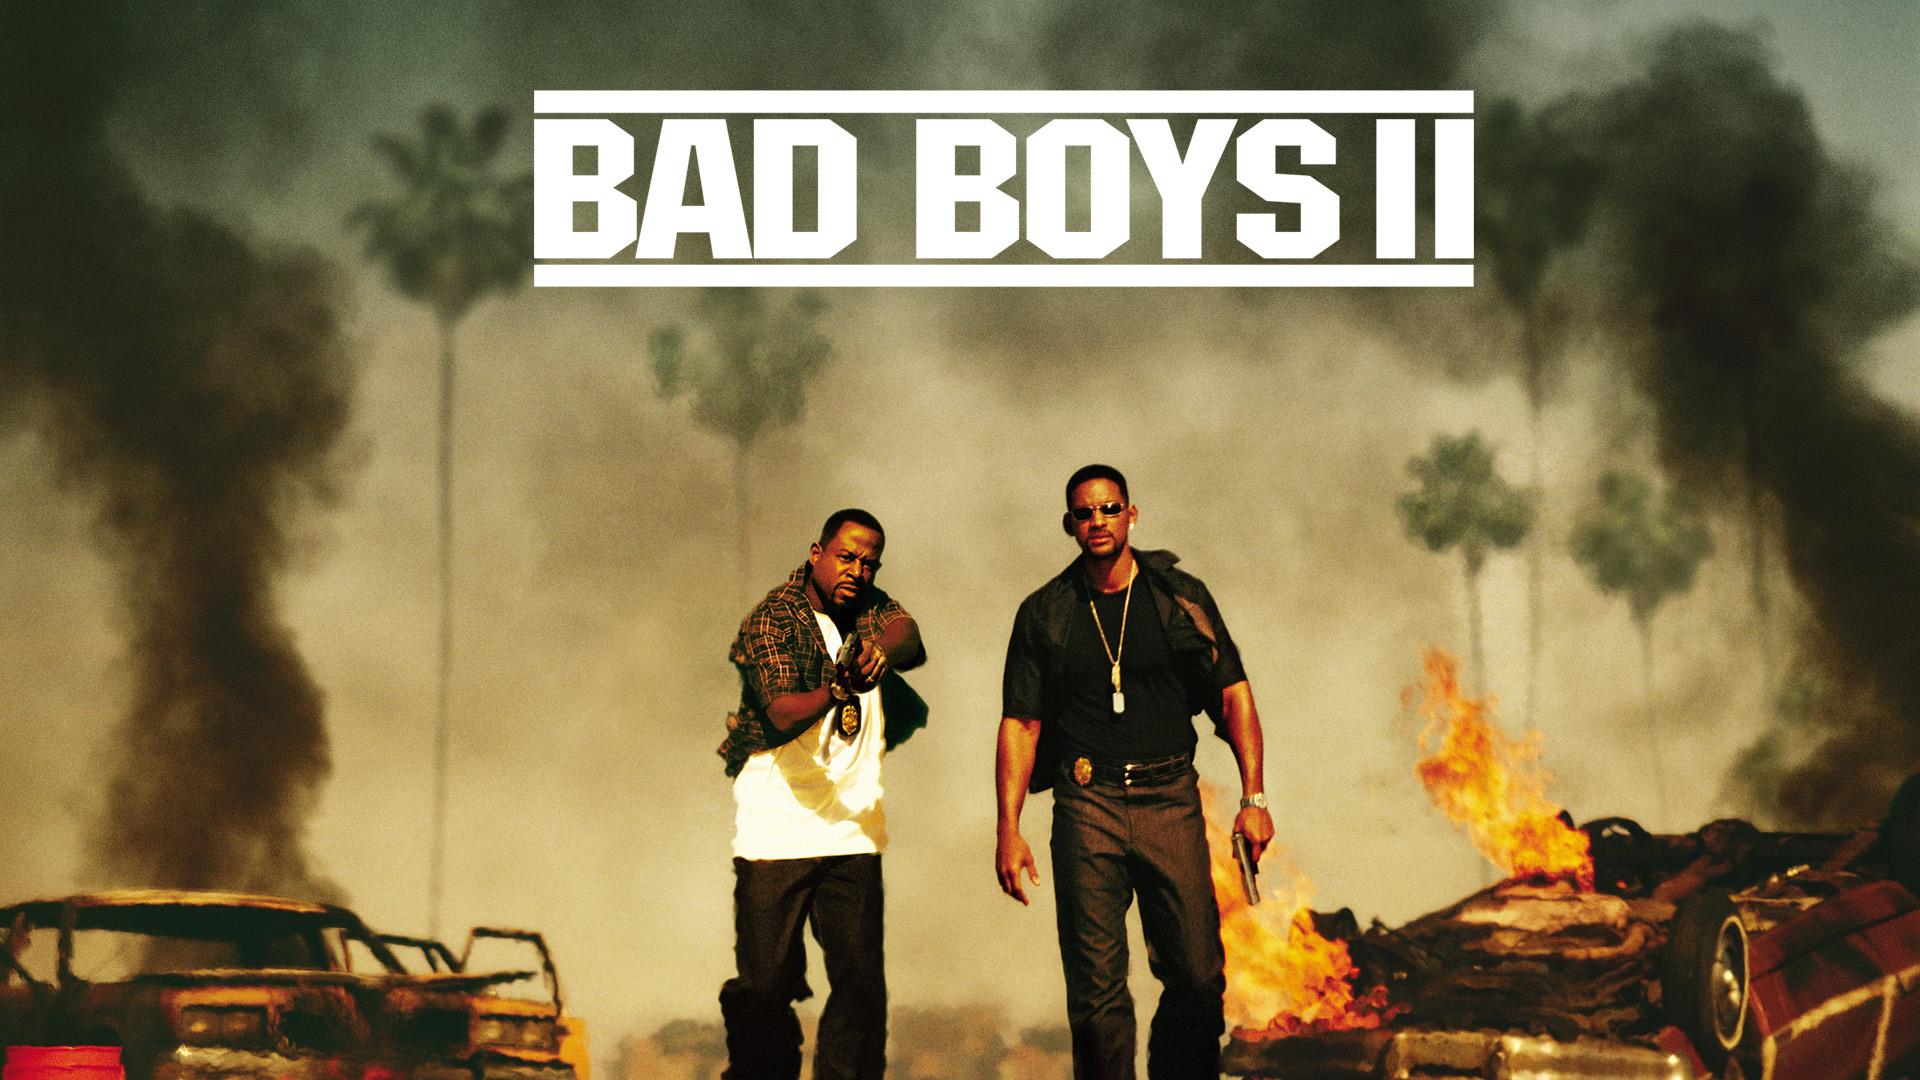 Bad Boys 2 Wallpaper